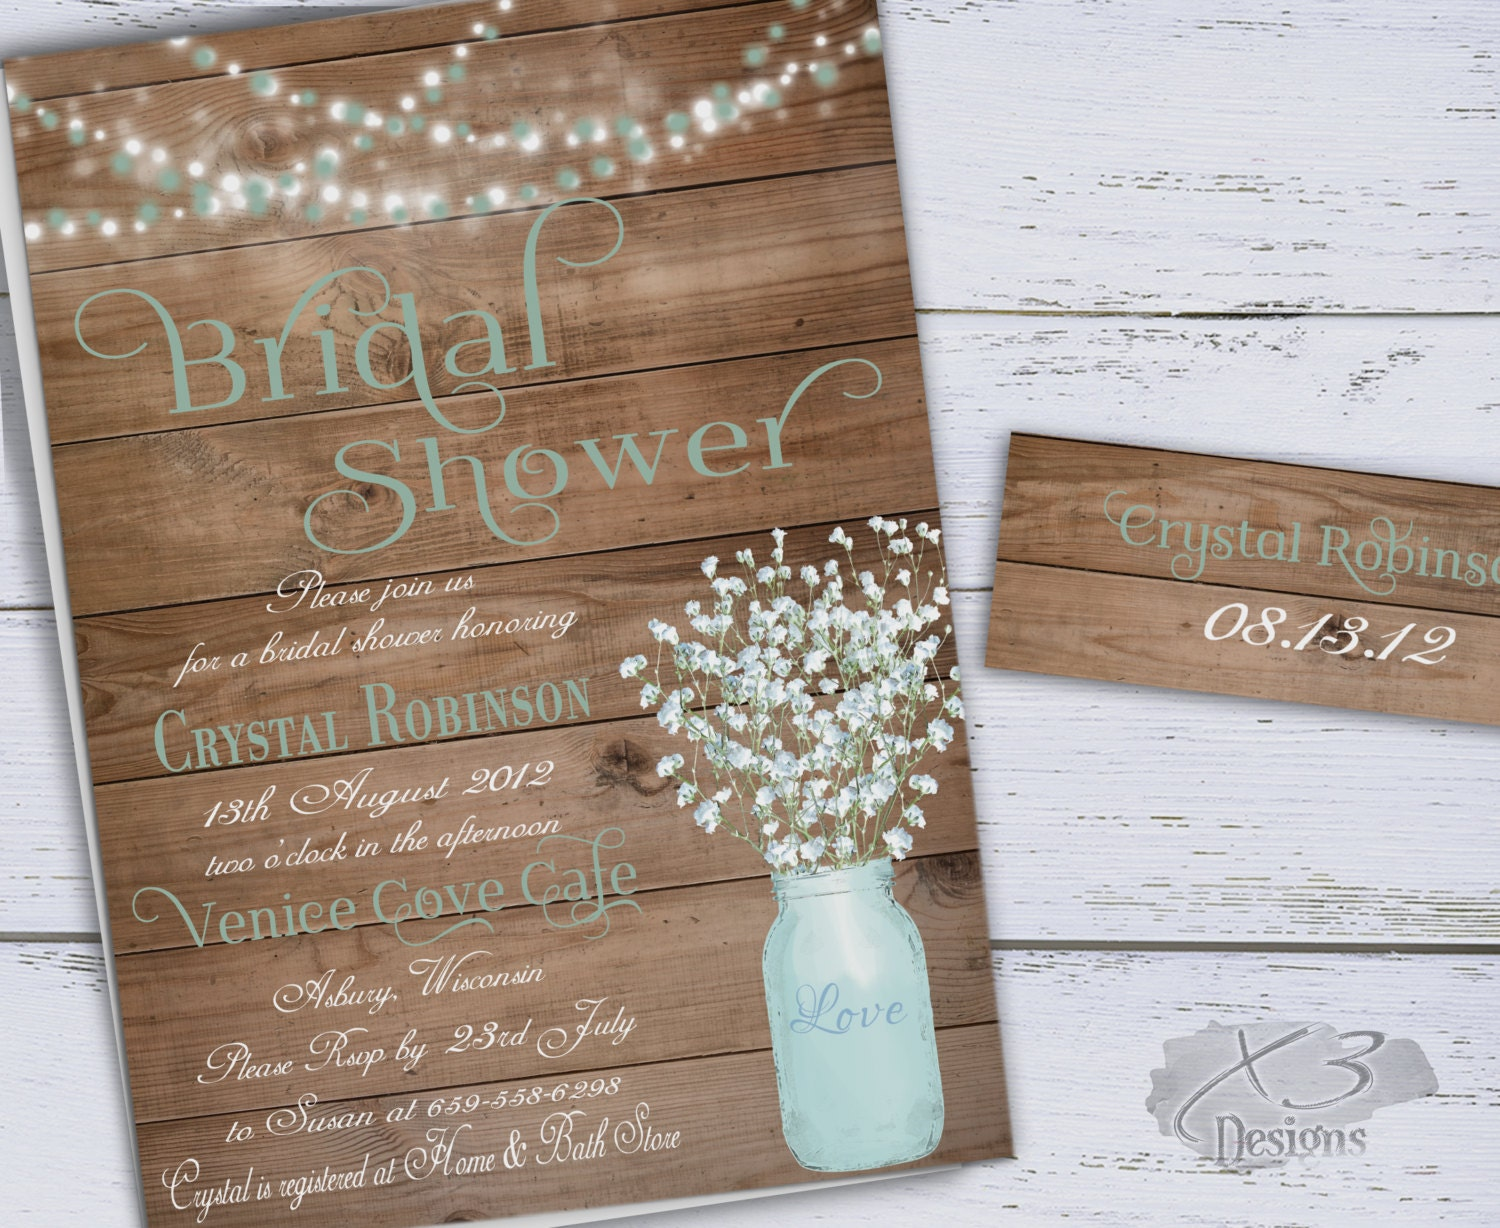 Wedding Shower Invitations Free: Rustic Bridal Shower Invitation Printable Baby's By X3designs